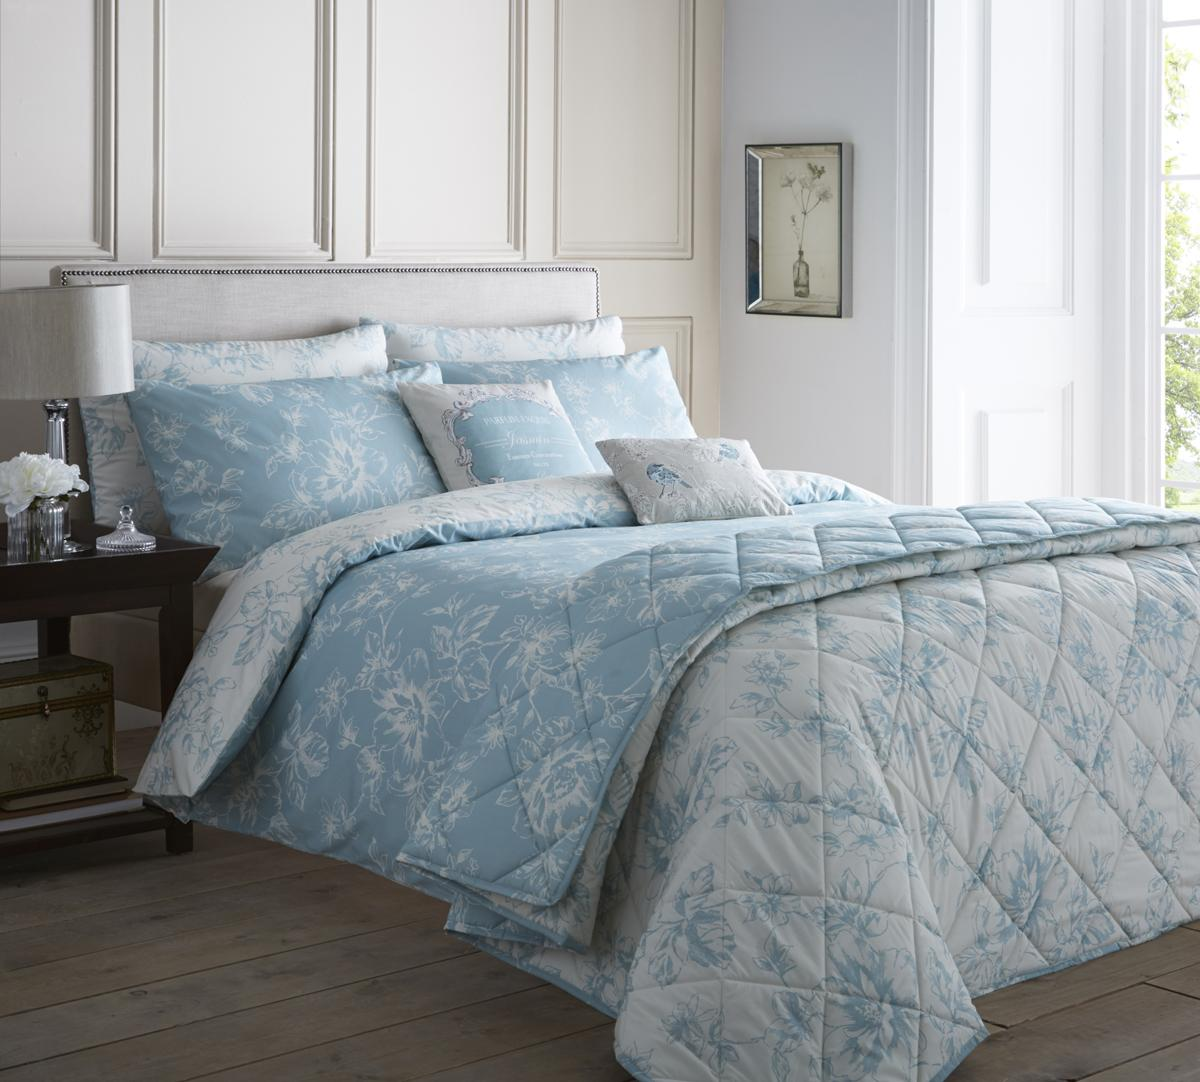 Buy Cheap Duck Egg Blue Bedding Compare Home Textiles